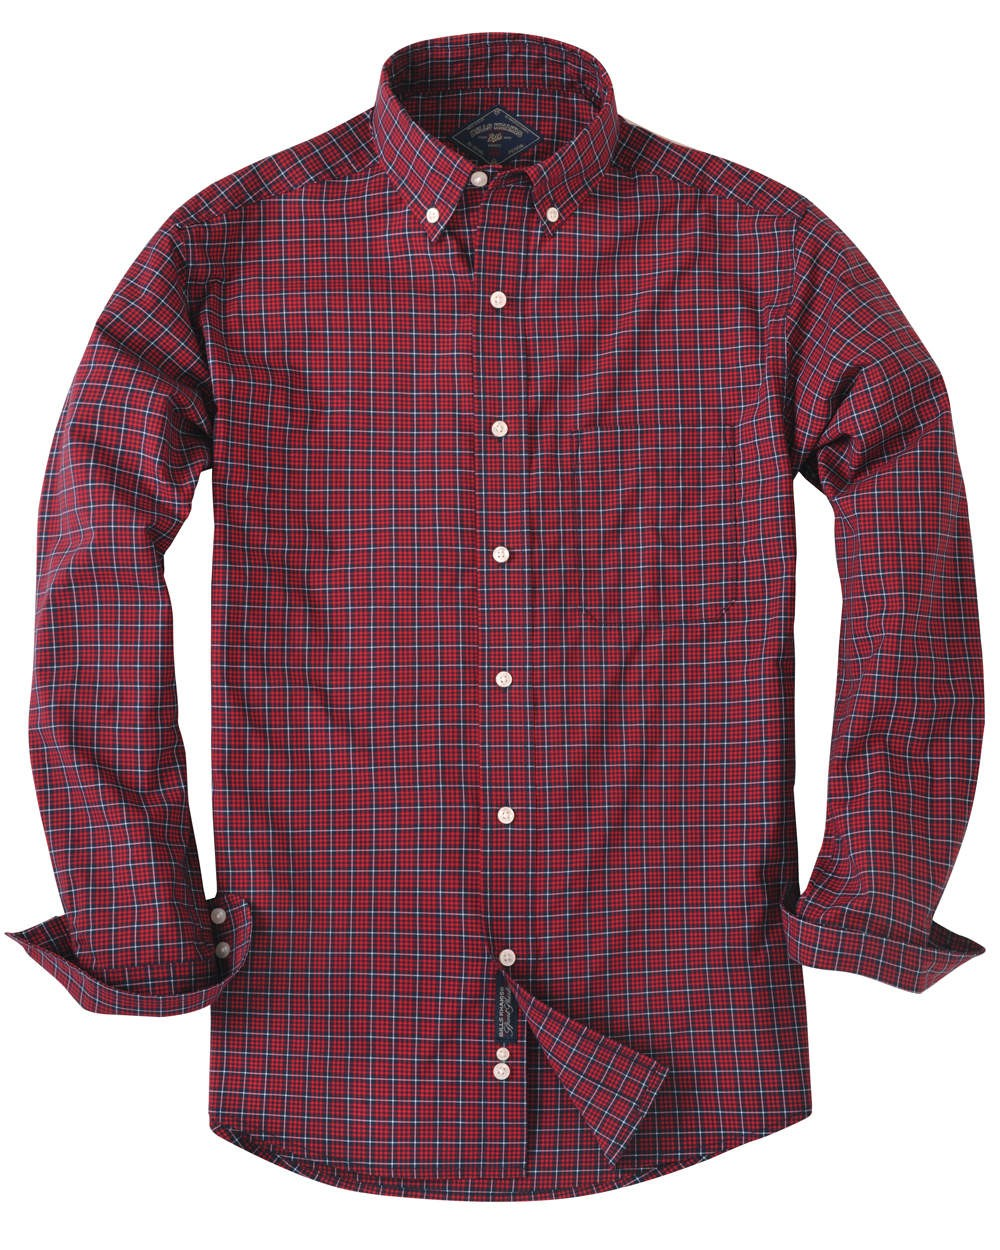 Bills Khakis Keystone Plaid \u2013 red